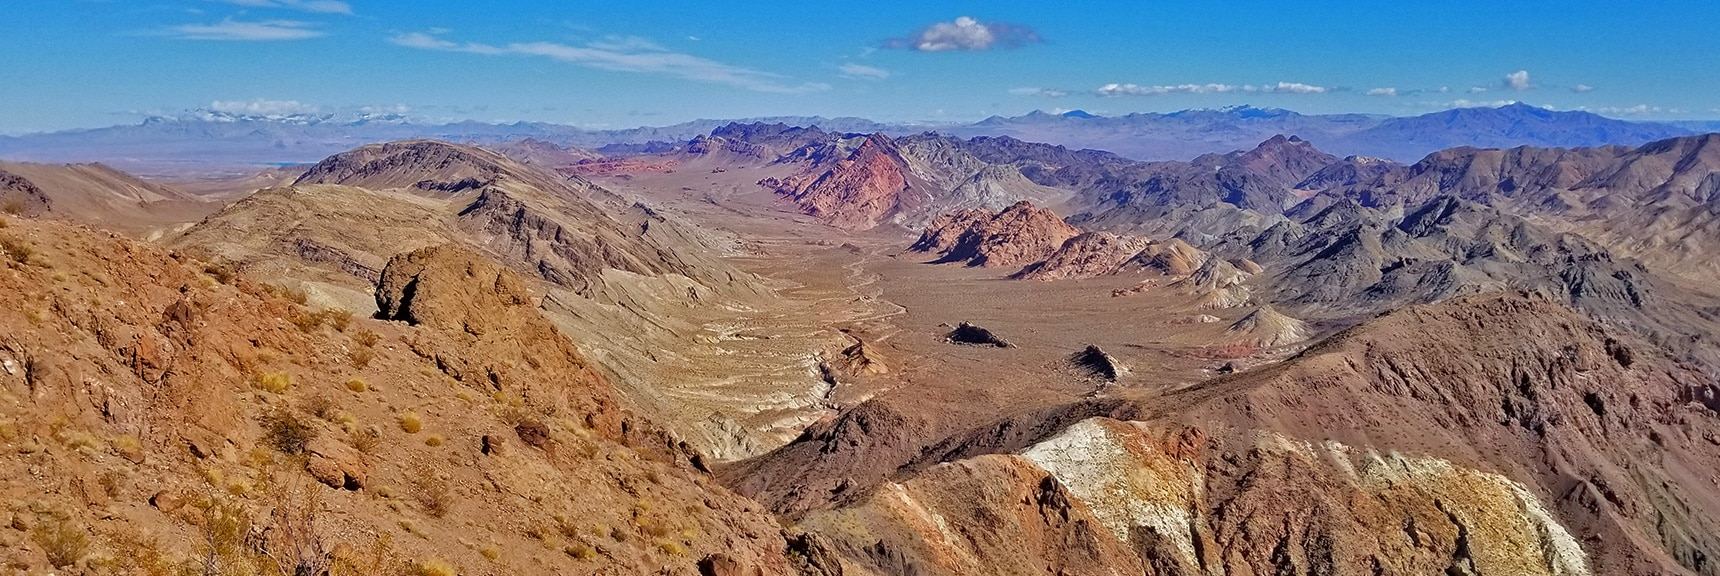 Pinto Valley from a Summit Ridge to the North of Hamblin Mt. | Hamblin Mountain, Lake Mead National Conservation Area, Nevada